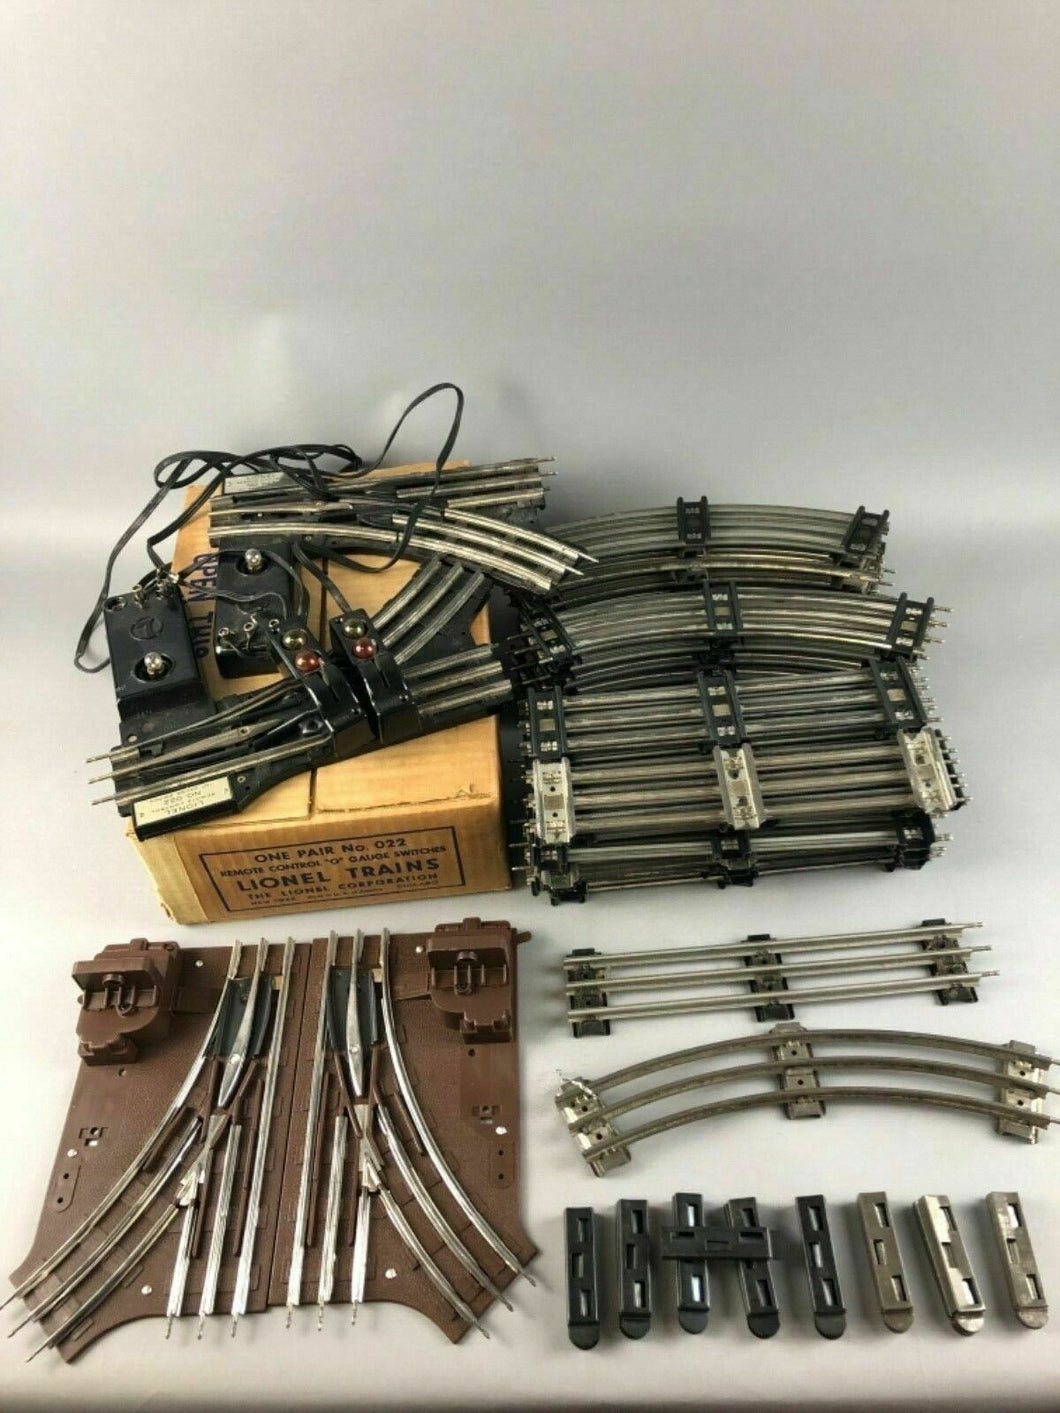 75pcs of LIONEL MAGNETIC TRACK & (2) # 022 REMOTE CONTROL SWITCHES -